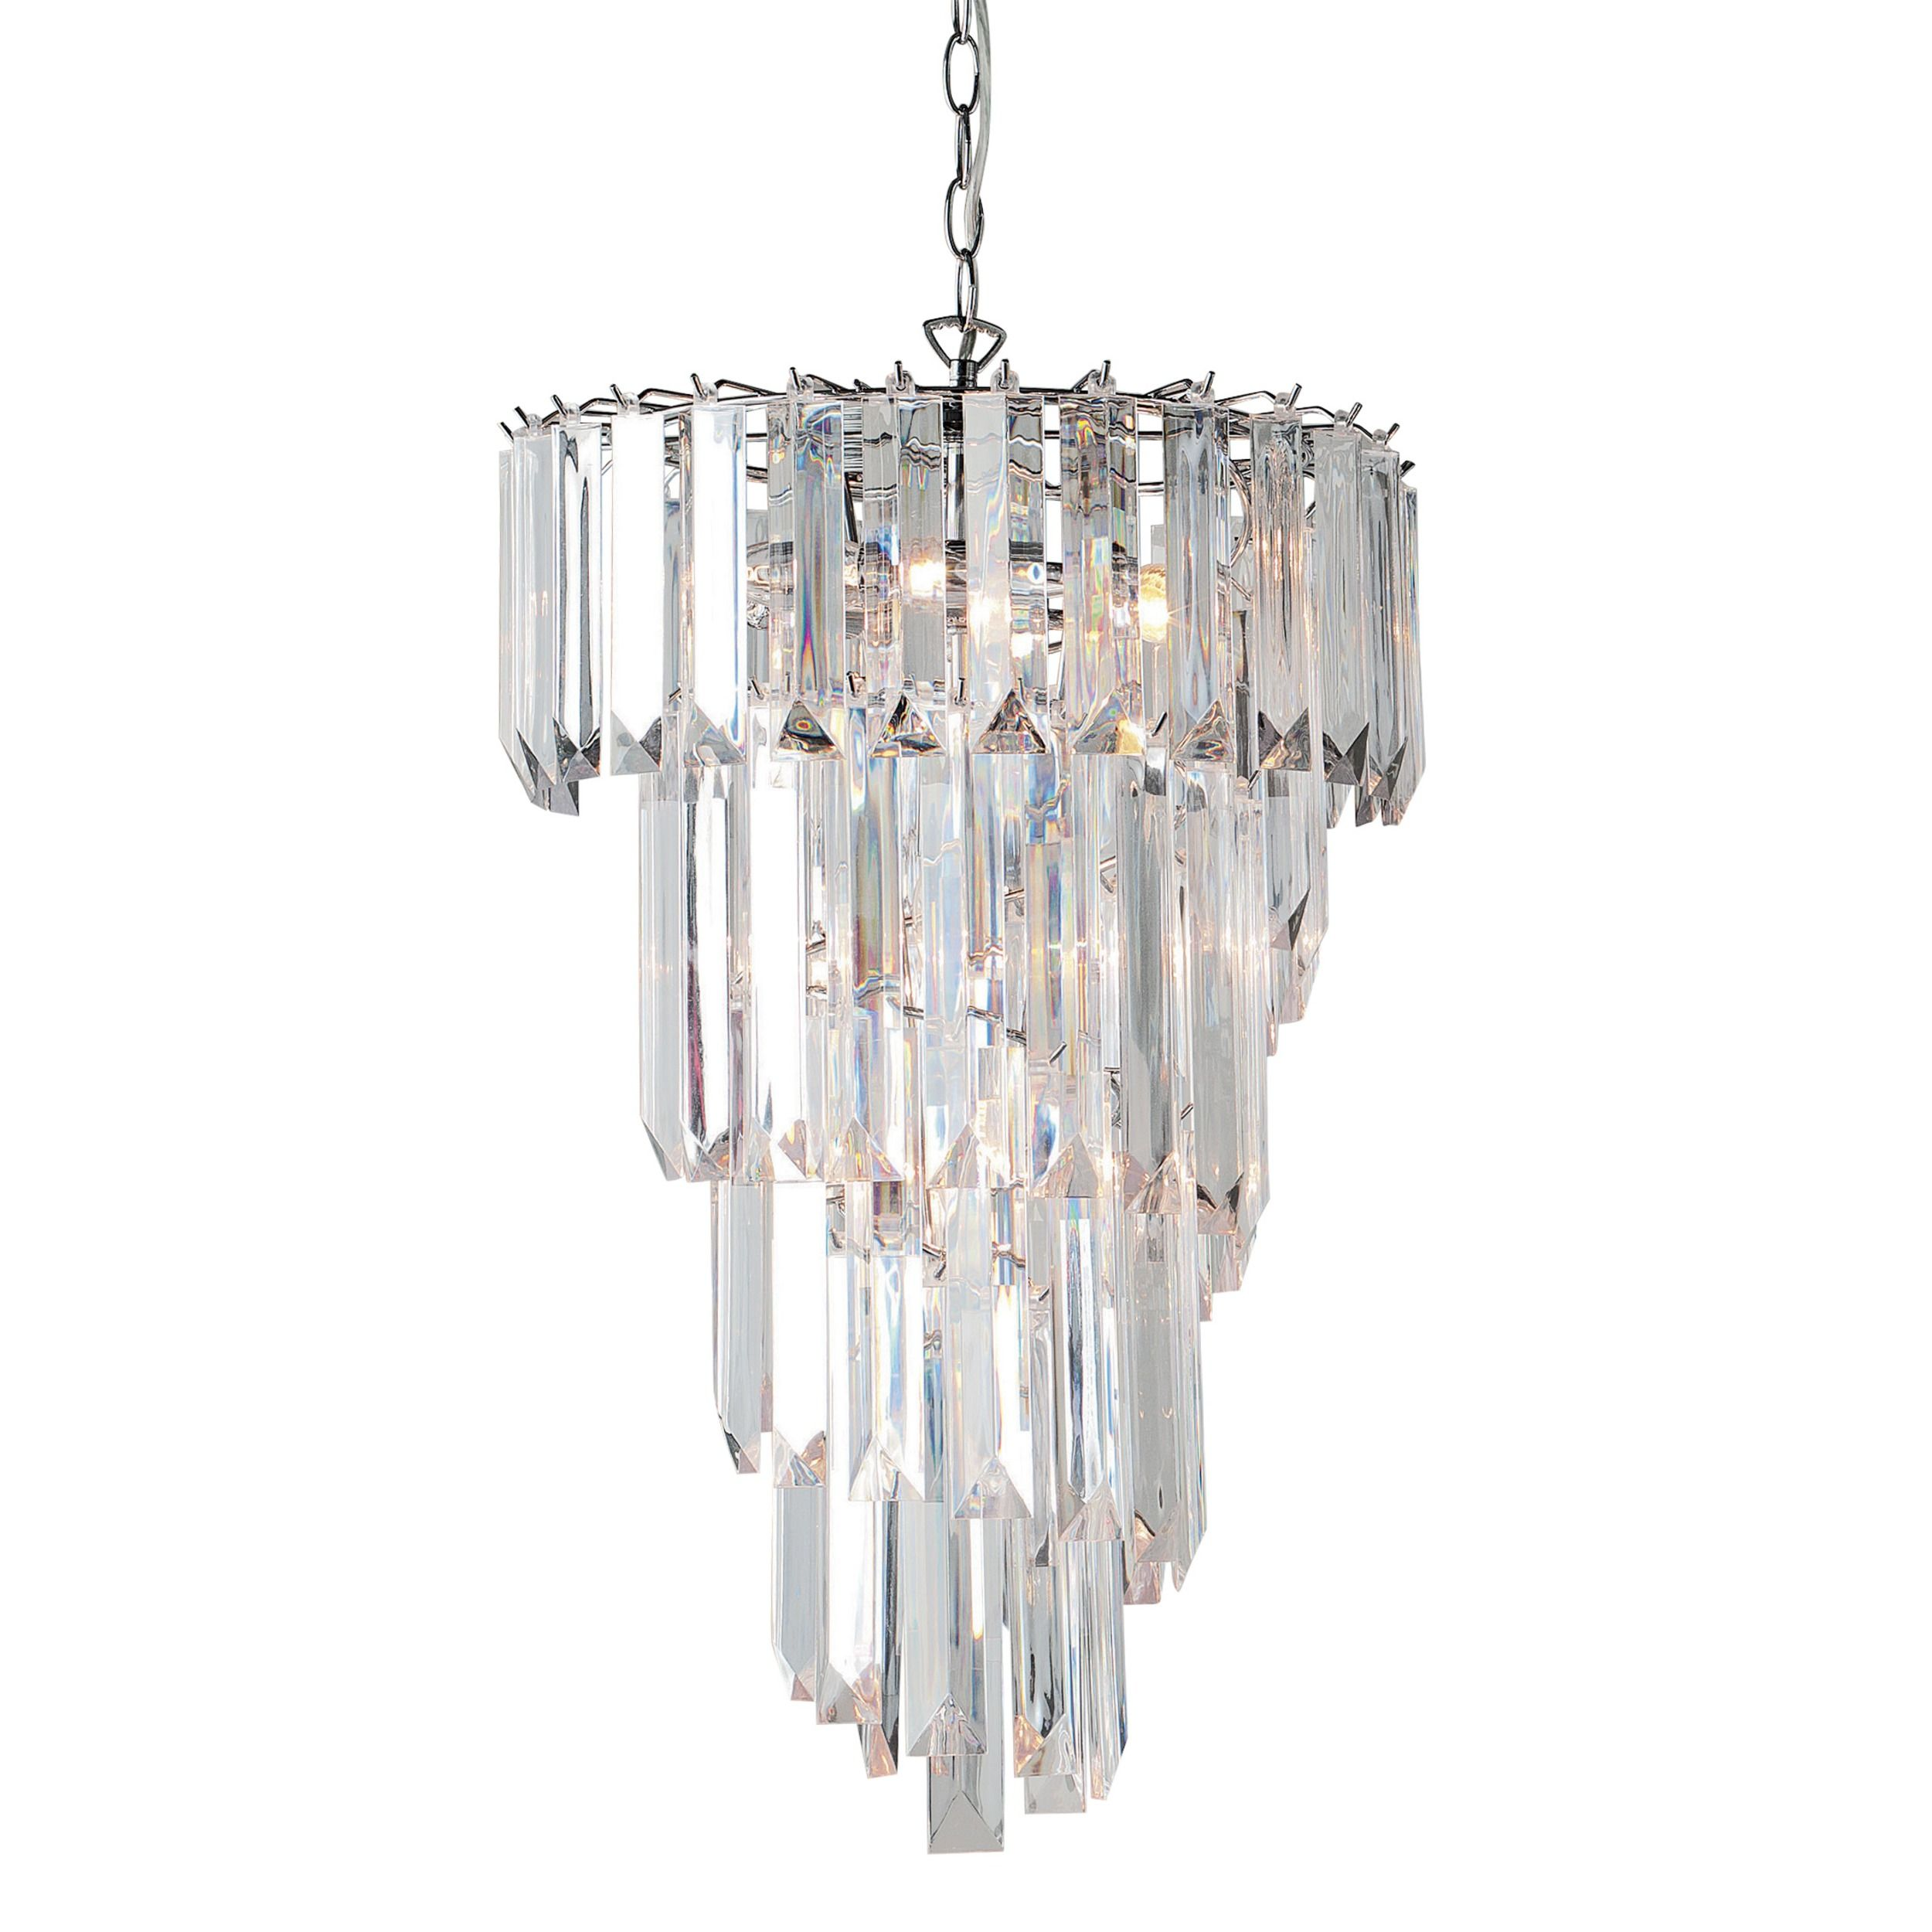 Crystal Chandelier Laura Ashley: I Need The Large Size For The Stairs, Laura Ashley Helena